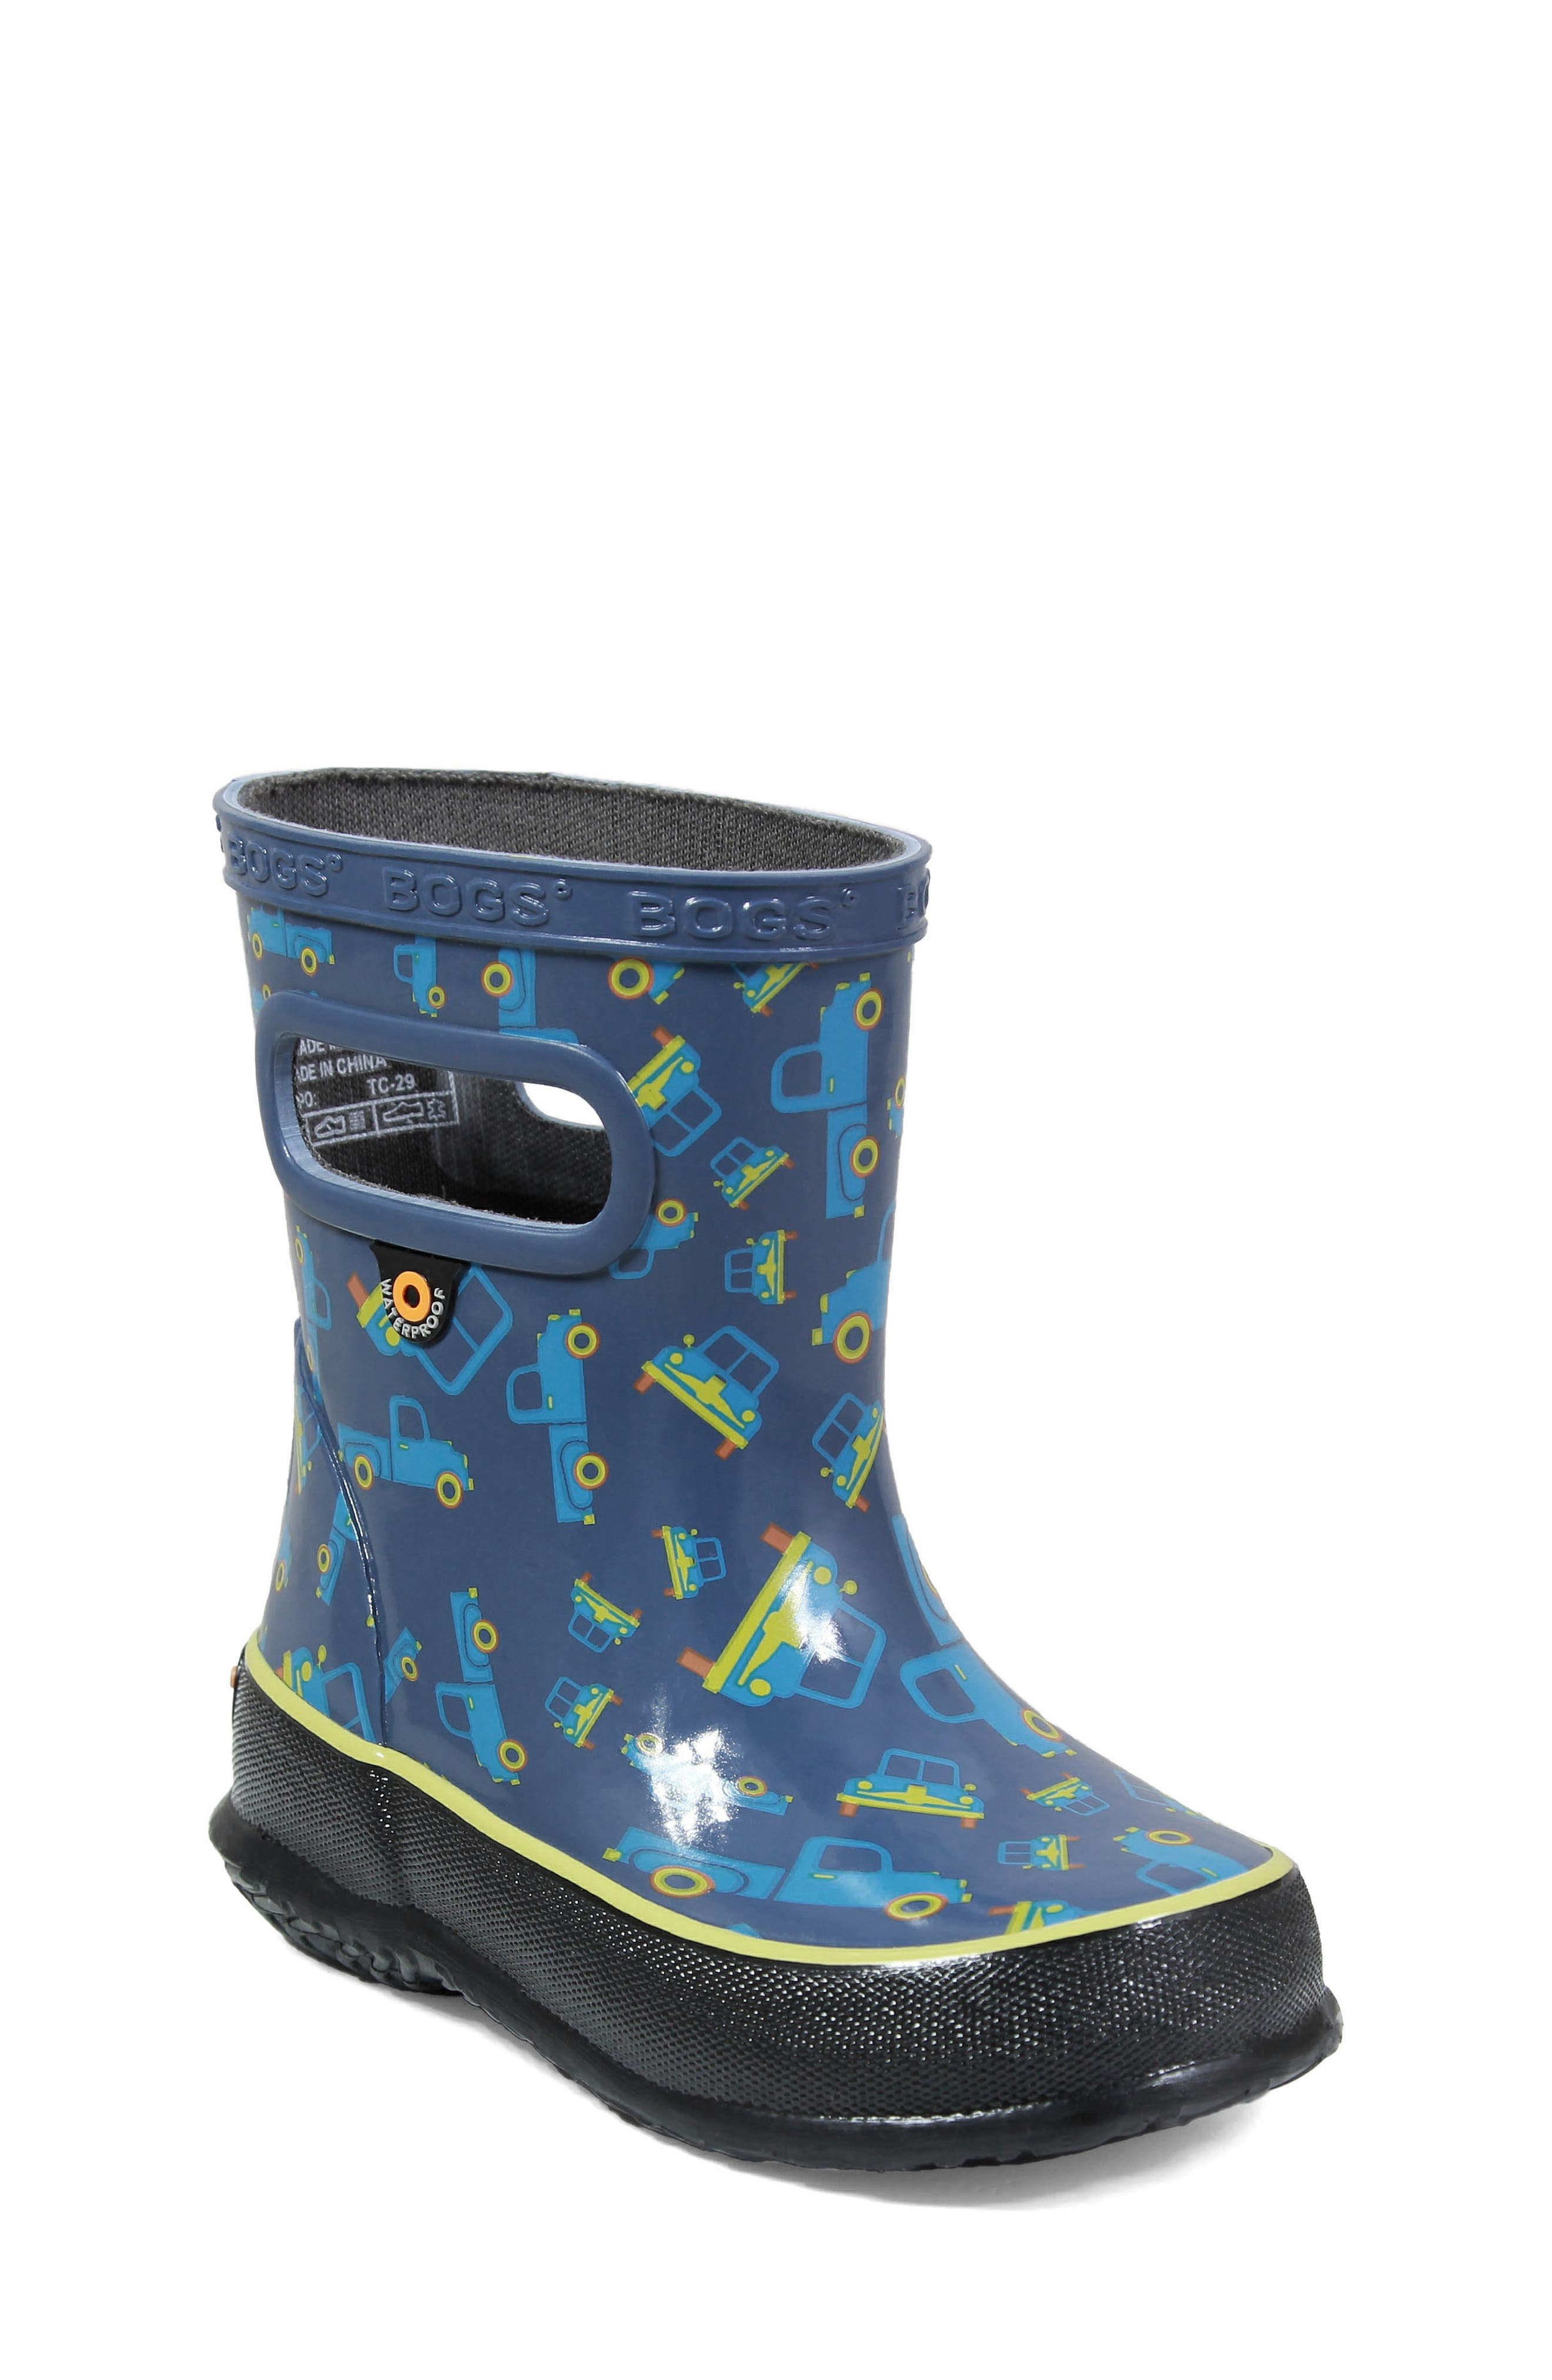 BOGS, Skipper Truck Print Rubber Rain Boot, Main thumbnail 1, color, 460